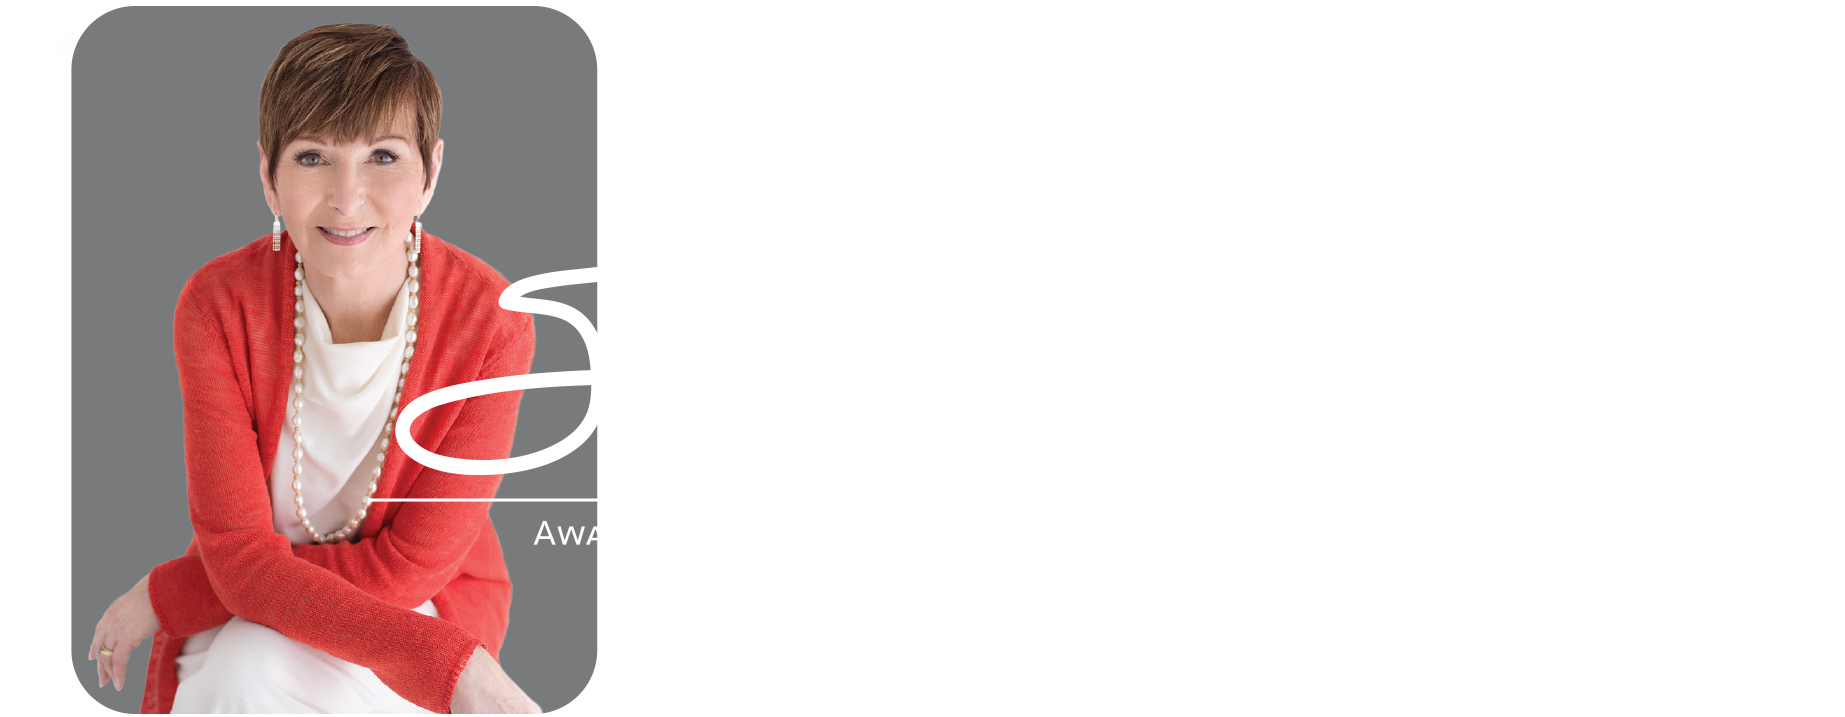 Awakening Leaders, One Honest Conversation At A Time